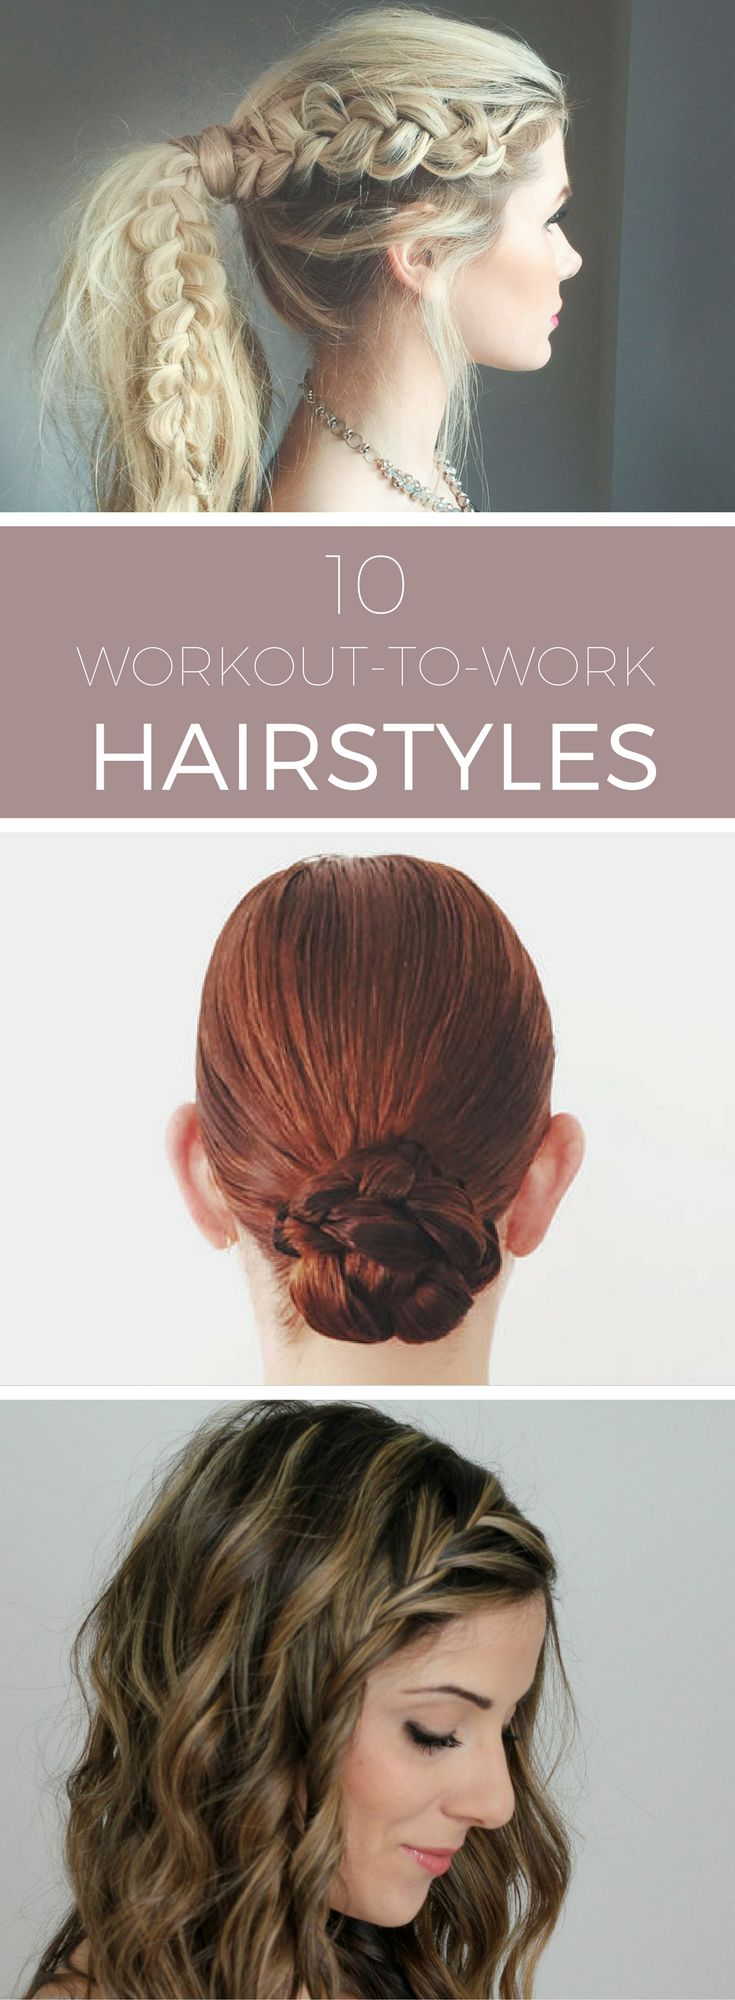 10 Workout-to-Work Hairstyles // No time between the gym and the office? No worries—these sleek looks will take you from barre class to the boardroom effortlessly! Get the looks at spryliving.com